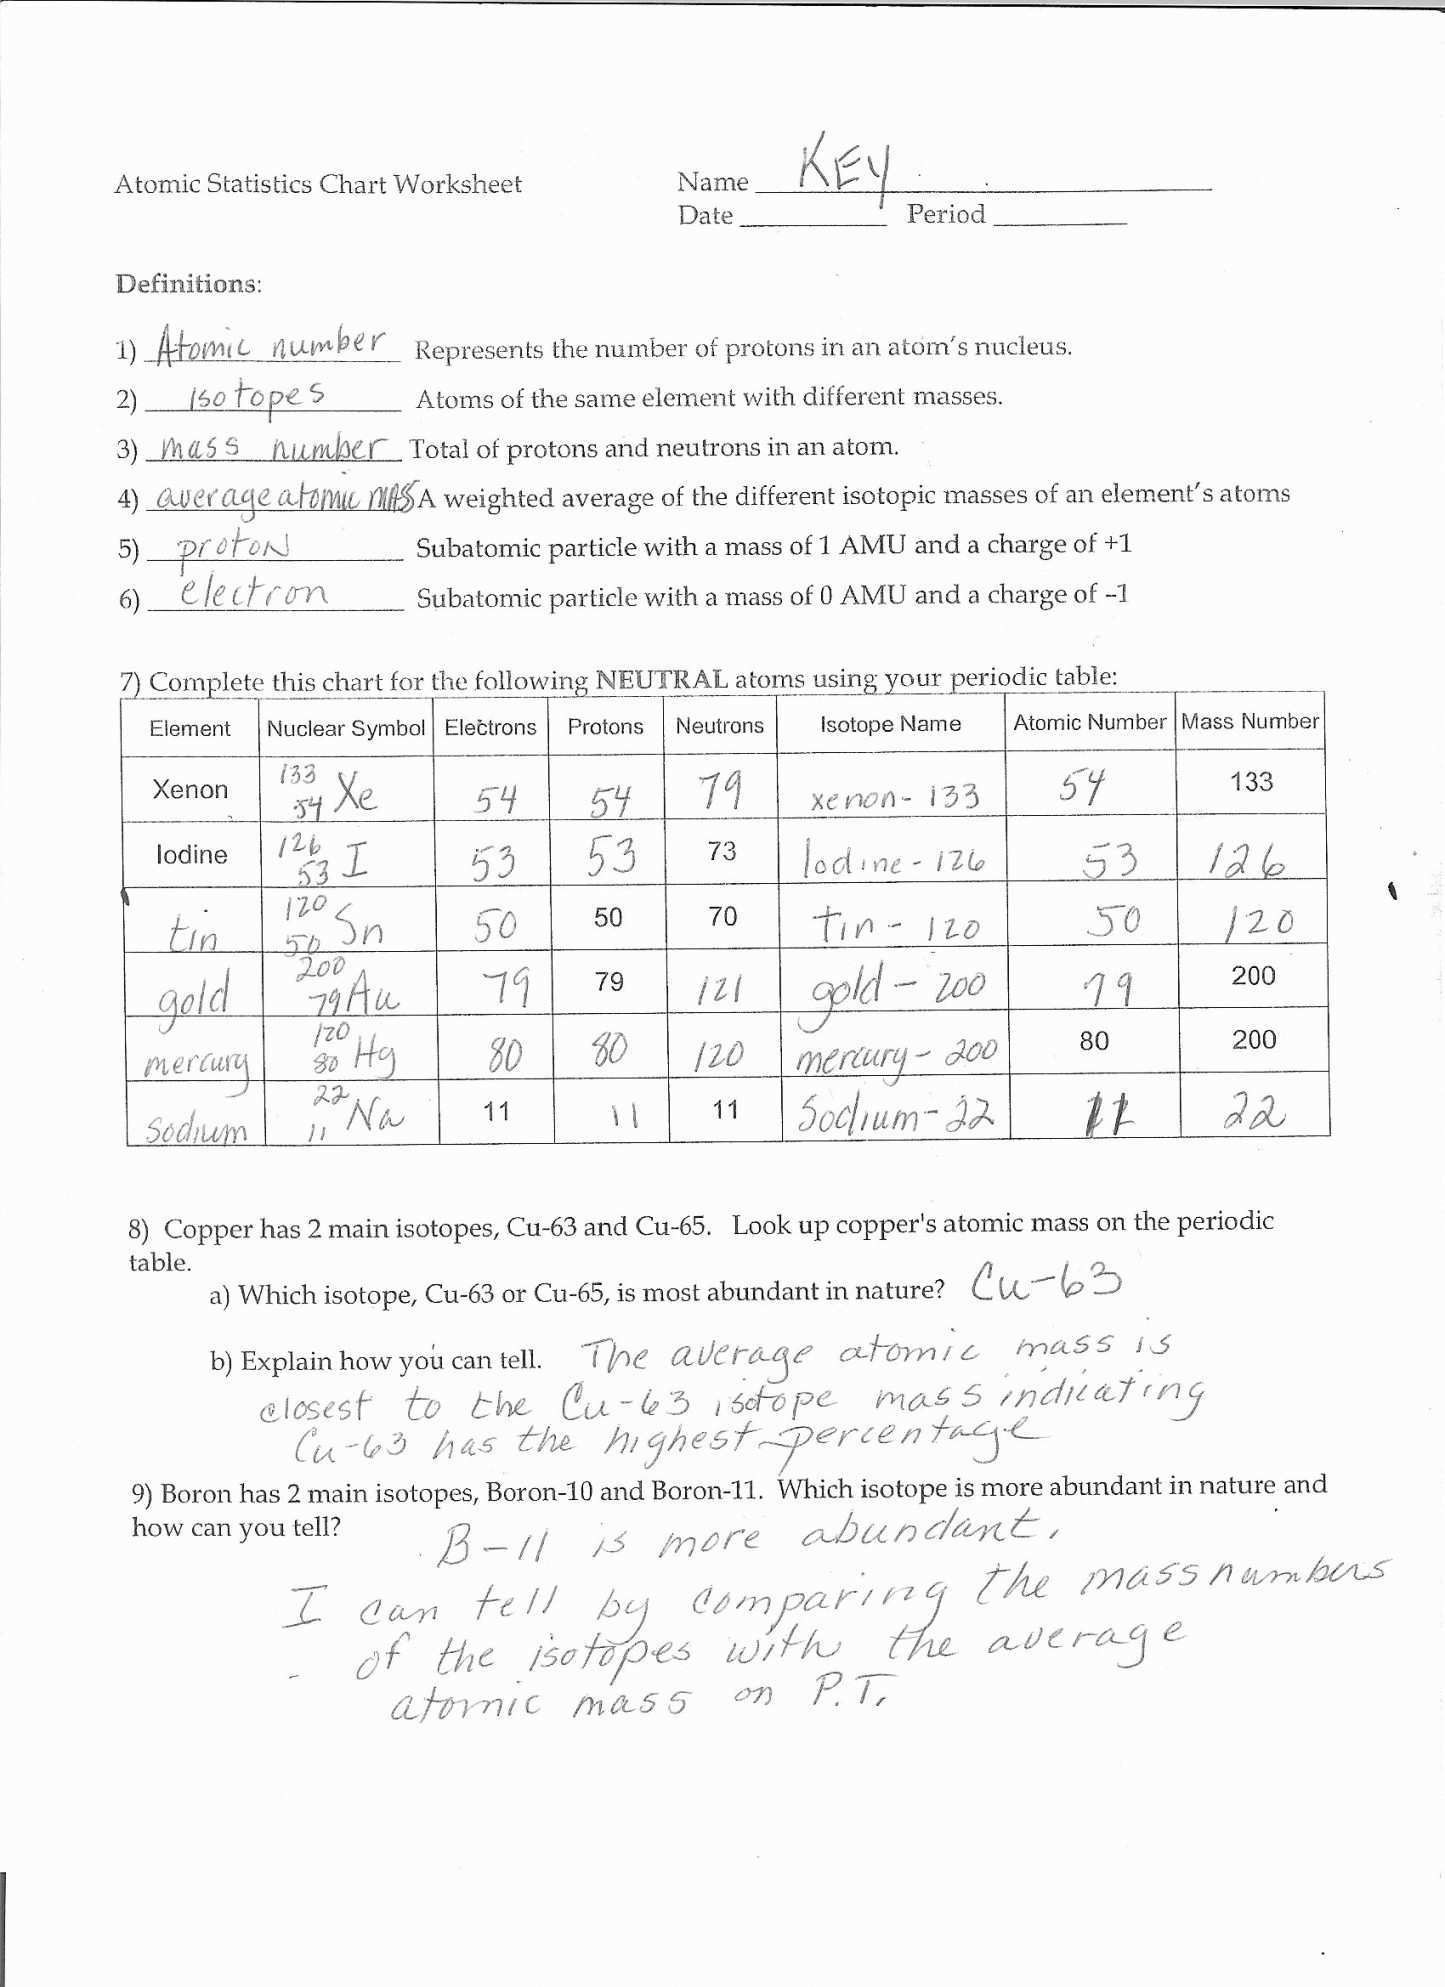 Atomic Structure Practice Worksheet Answers